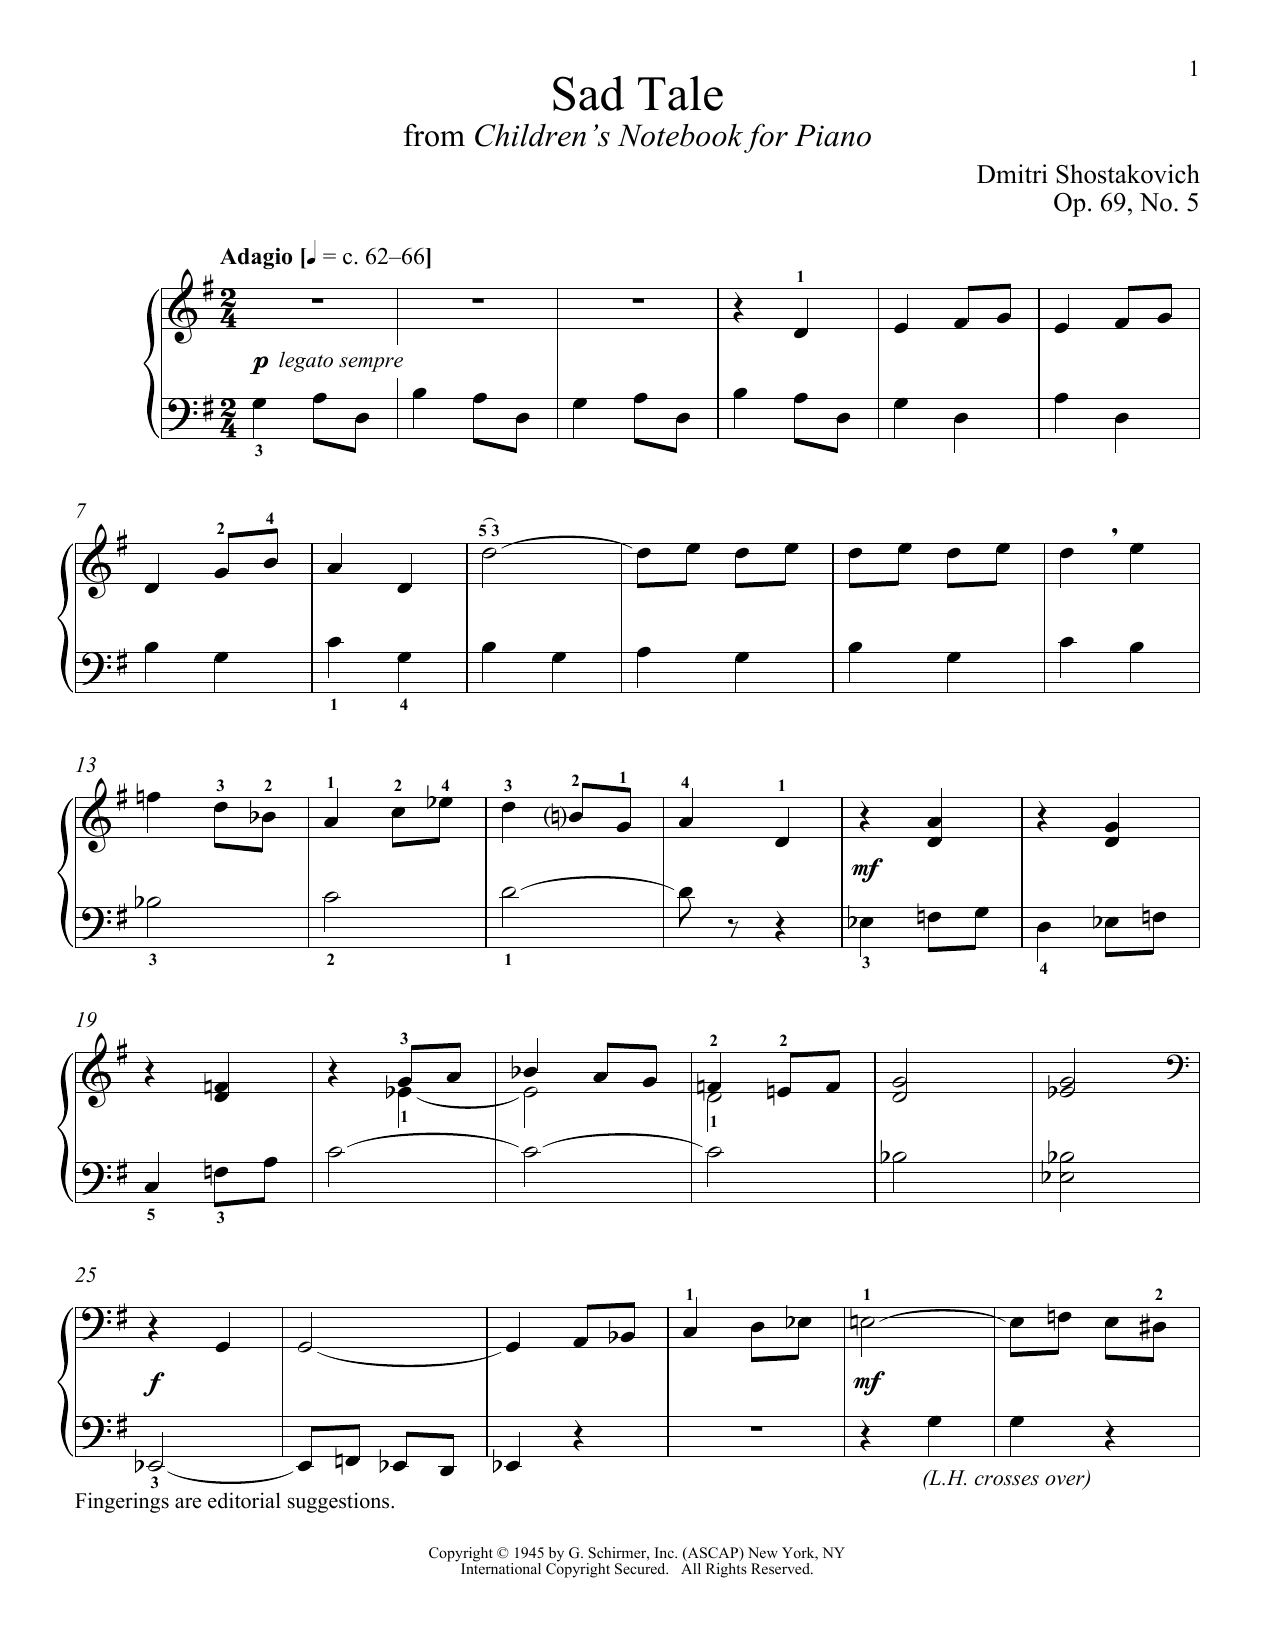 Download Dmitri Shostakovich 'Sad Tale' Digital Sheet Music Notes & Chords and start playing in minutes